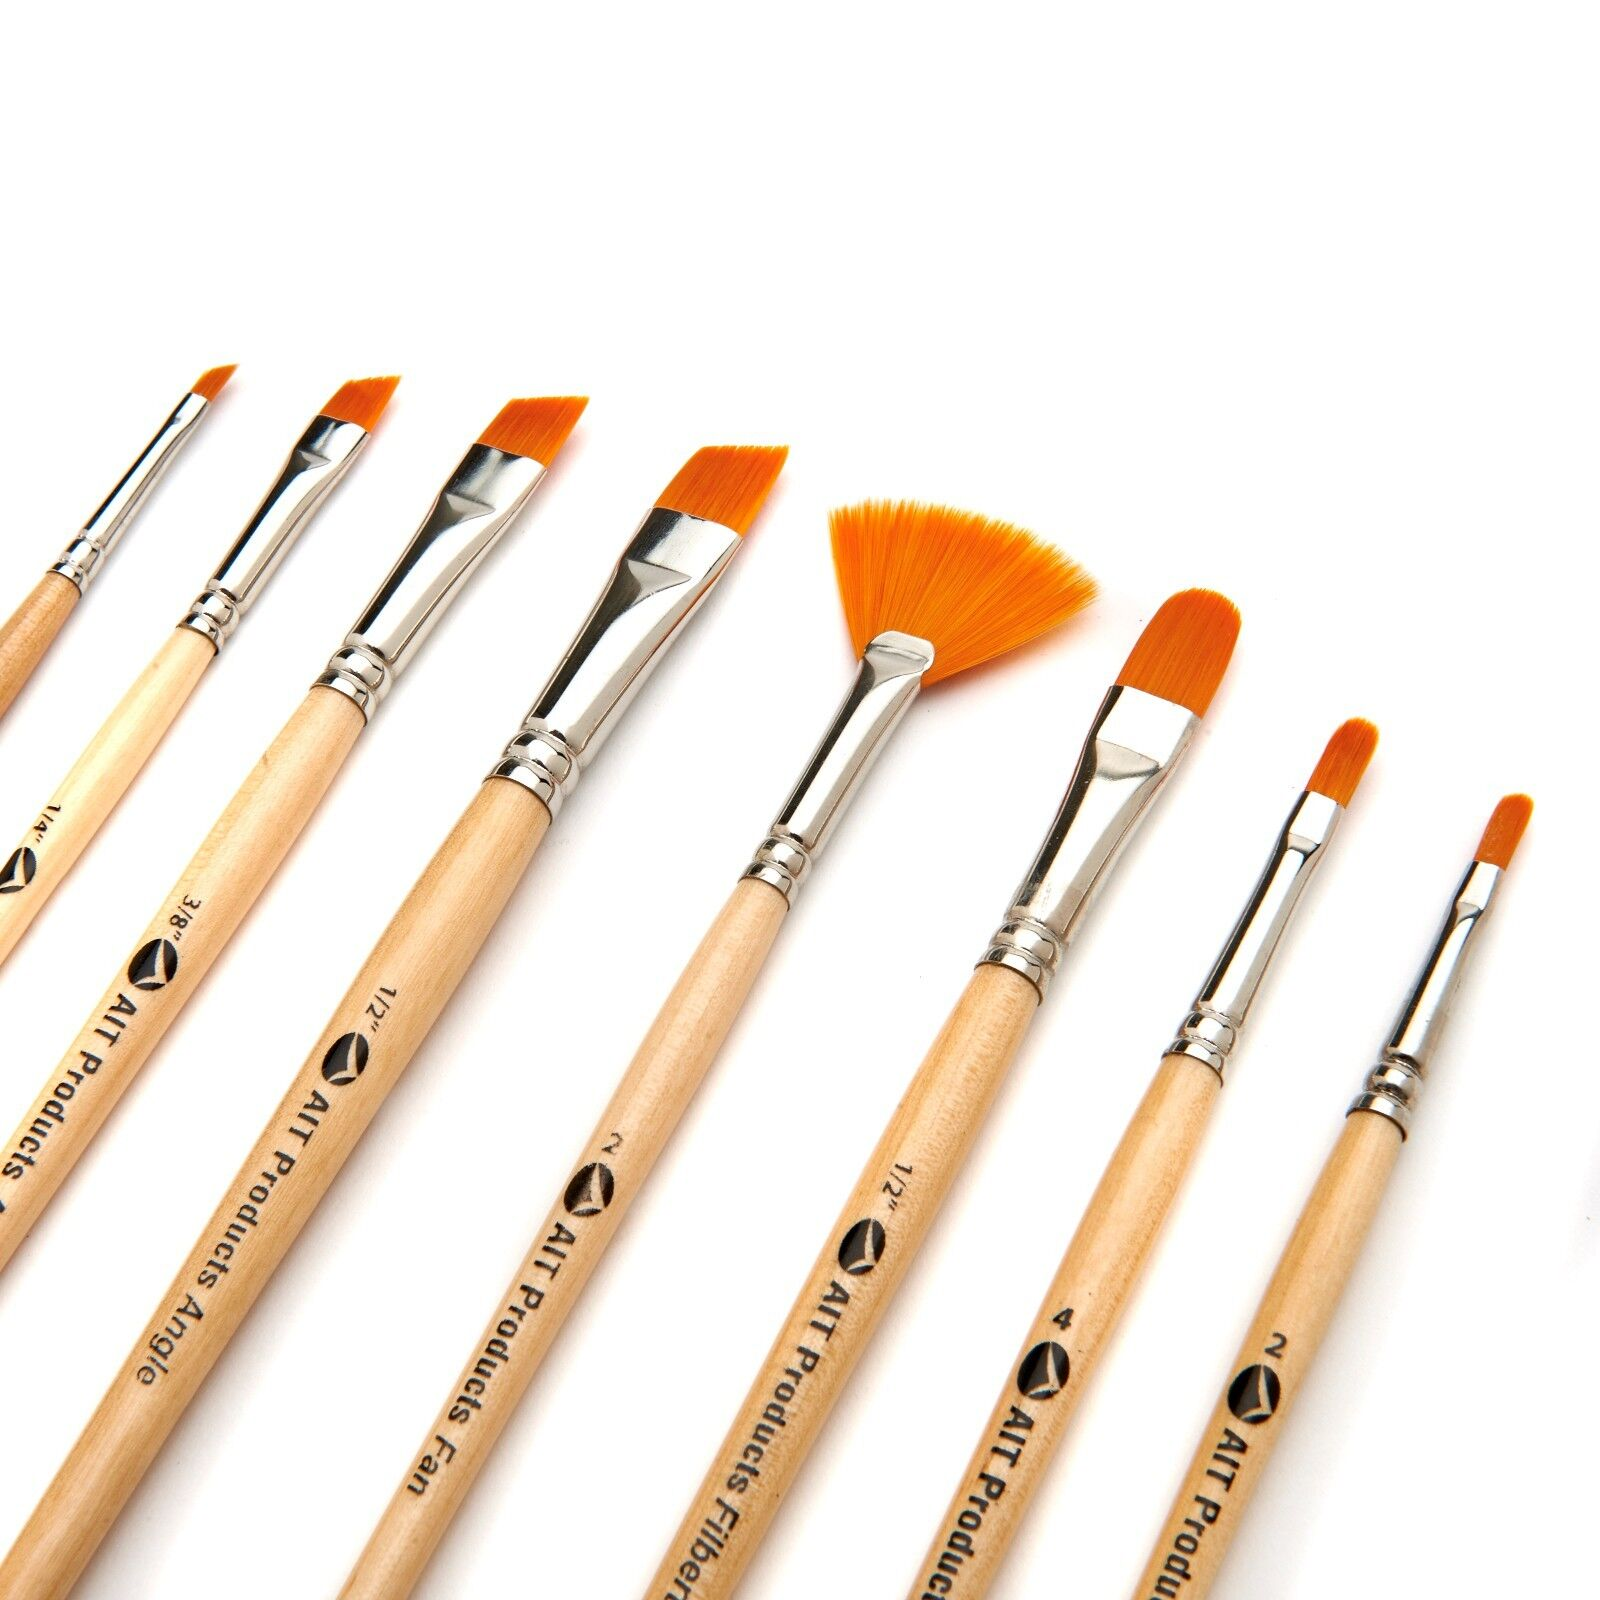 50X Artist Paint Brushes Set Acrylic Oil Watercolor Painting Craft Art Model@WY